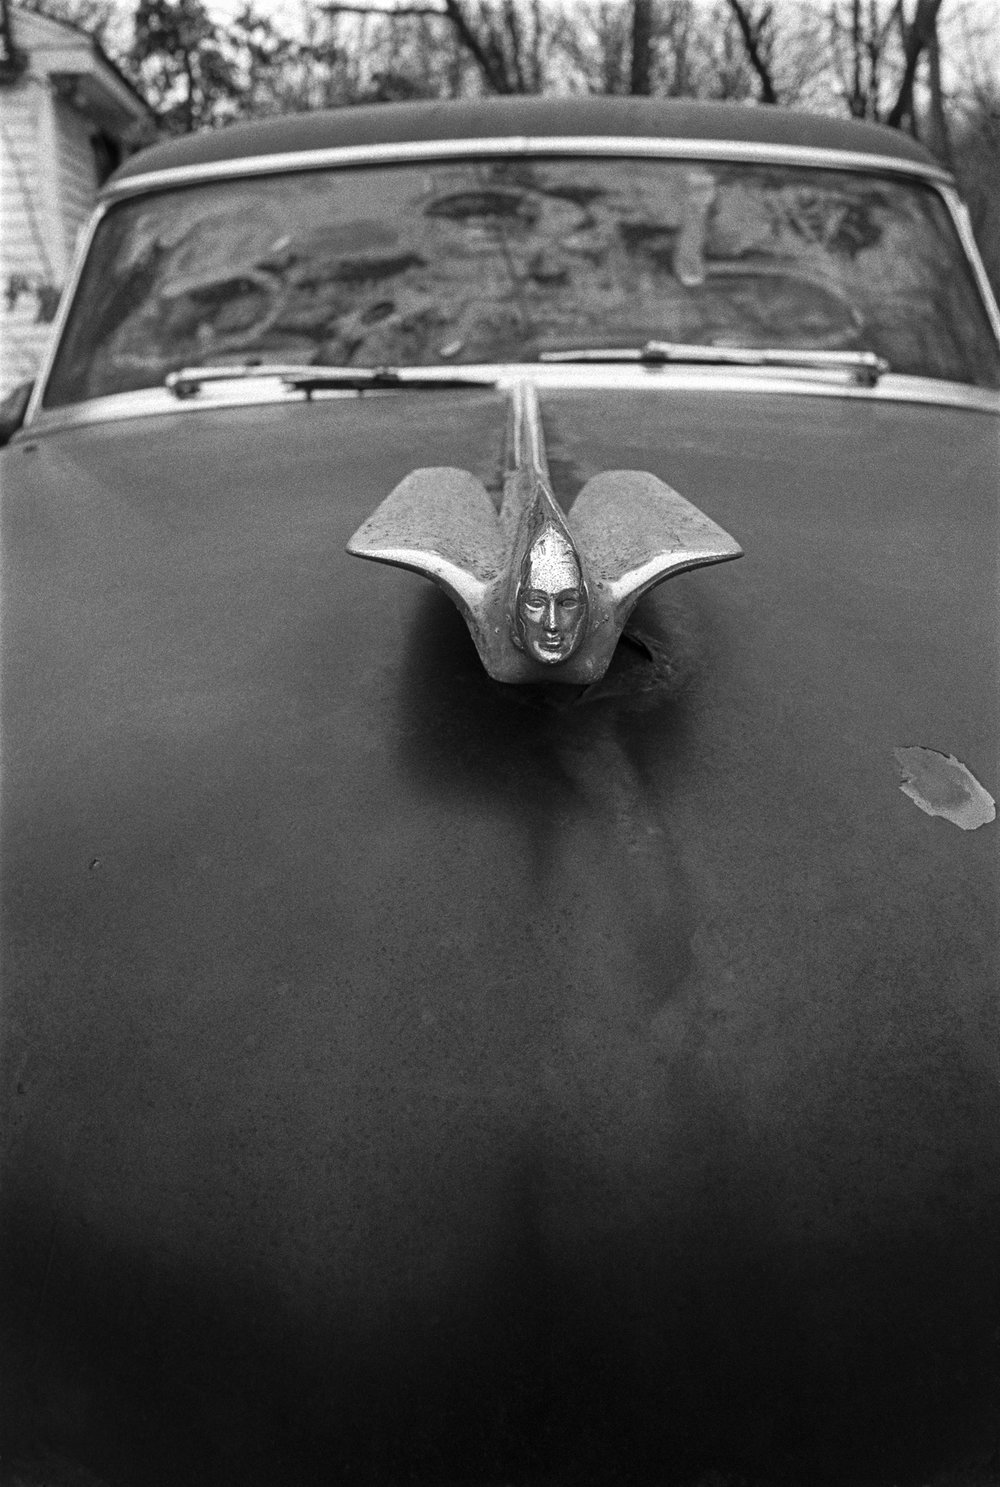 Sandy's Caddy's hood ornament.jpg